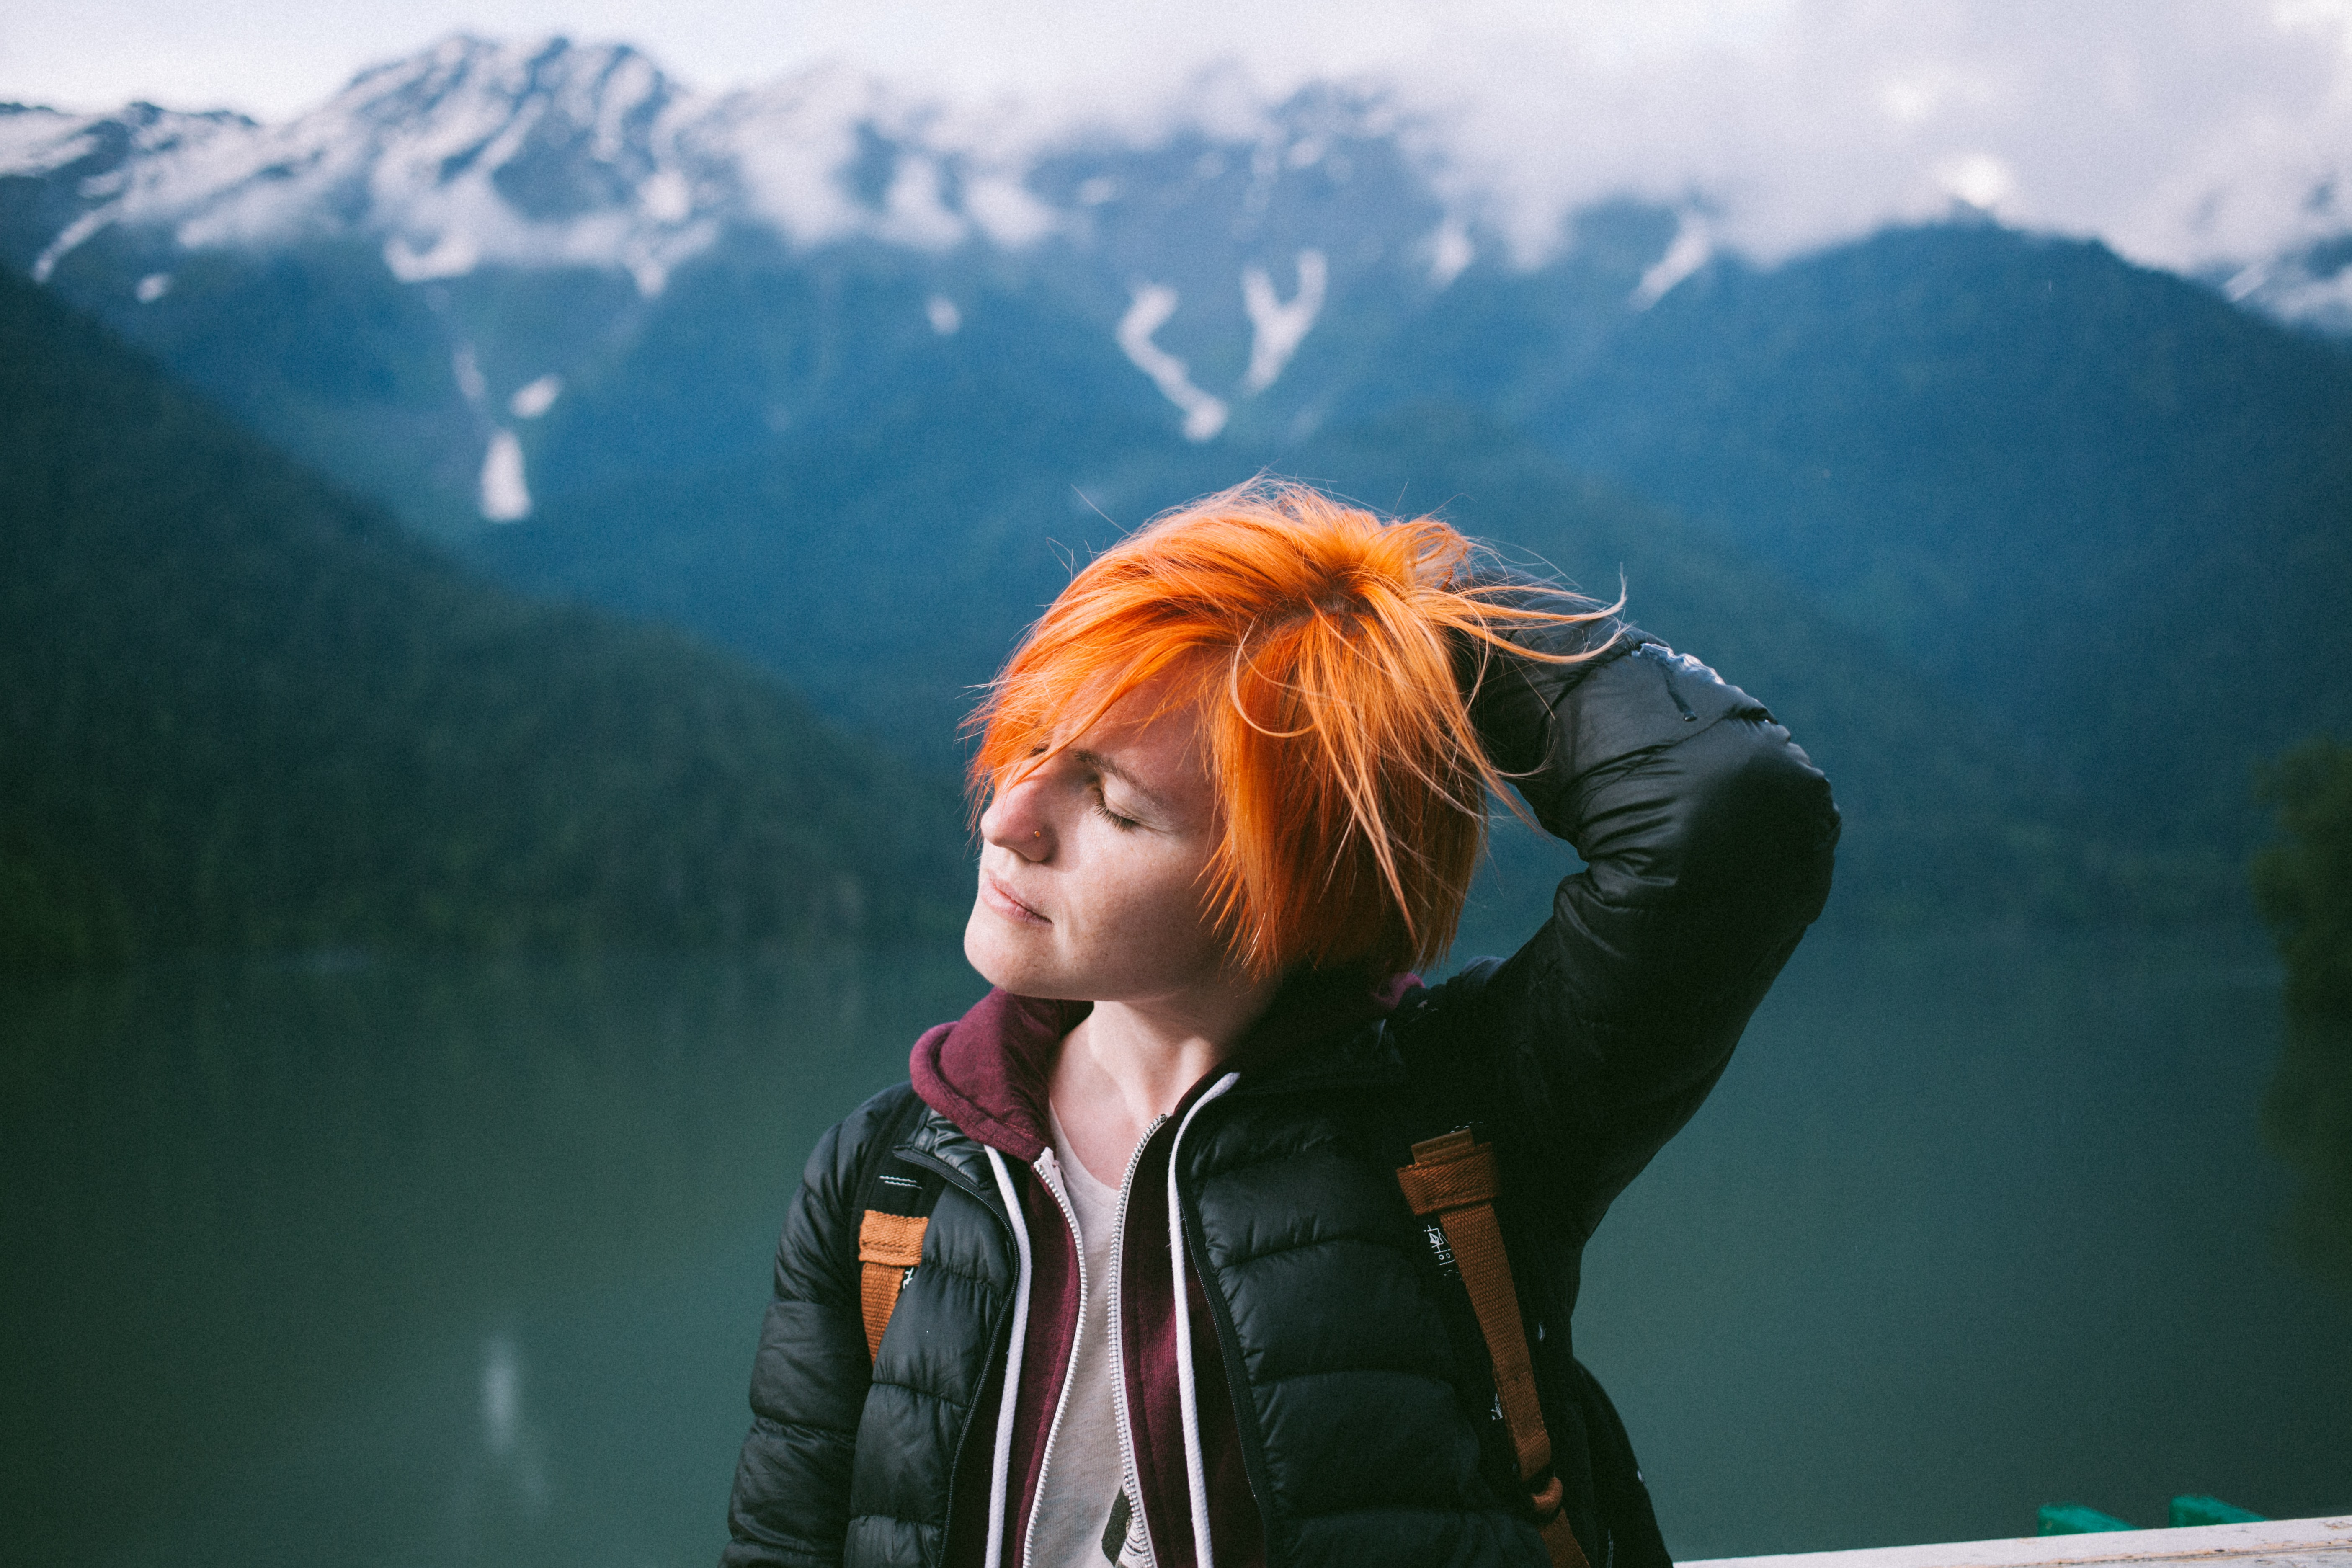 A woman closes her eyes and places a hand in her orange hair in the mountains